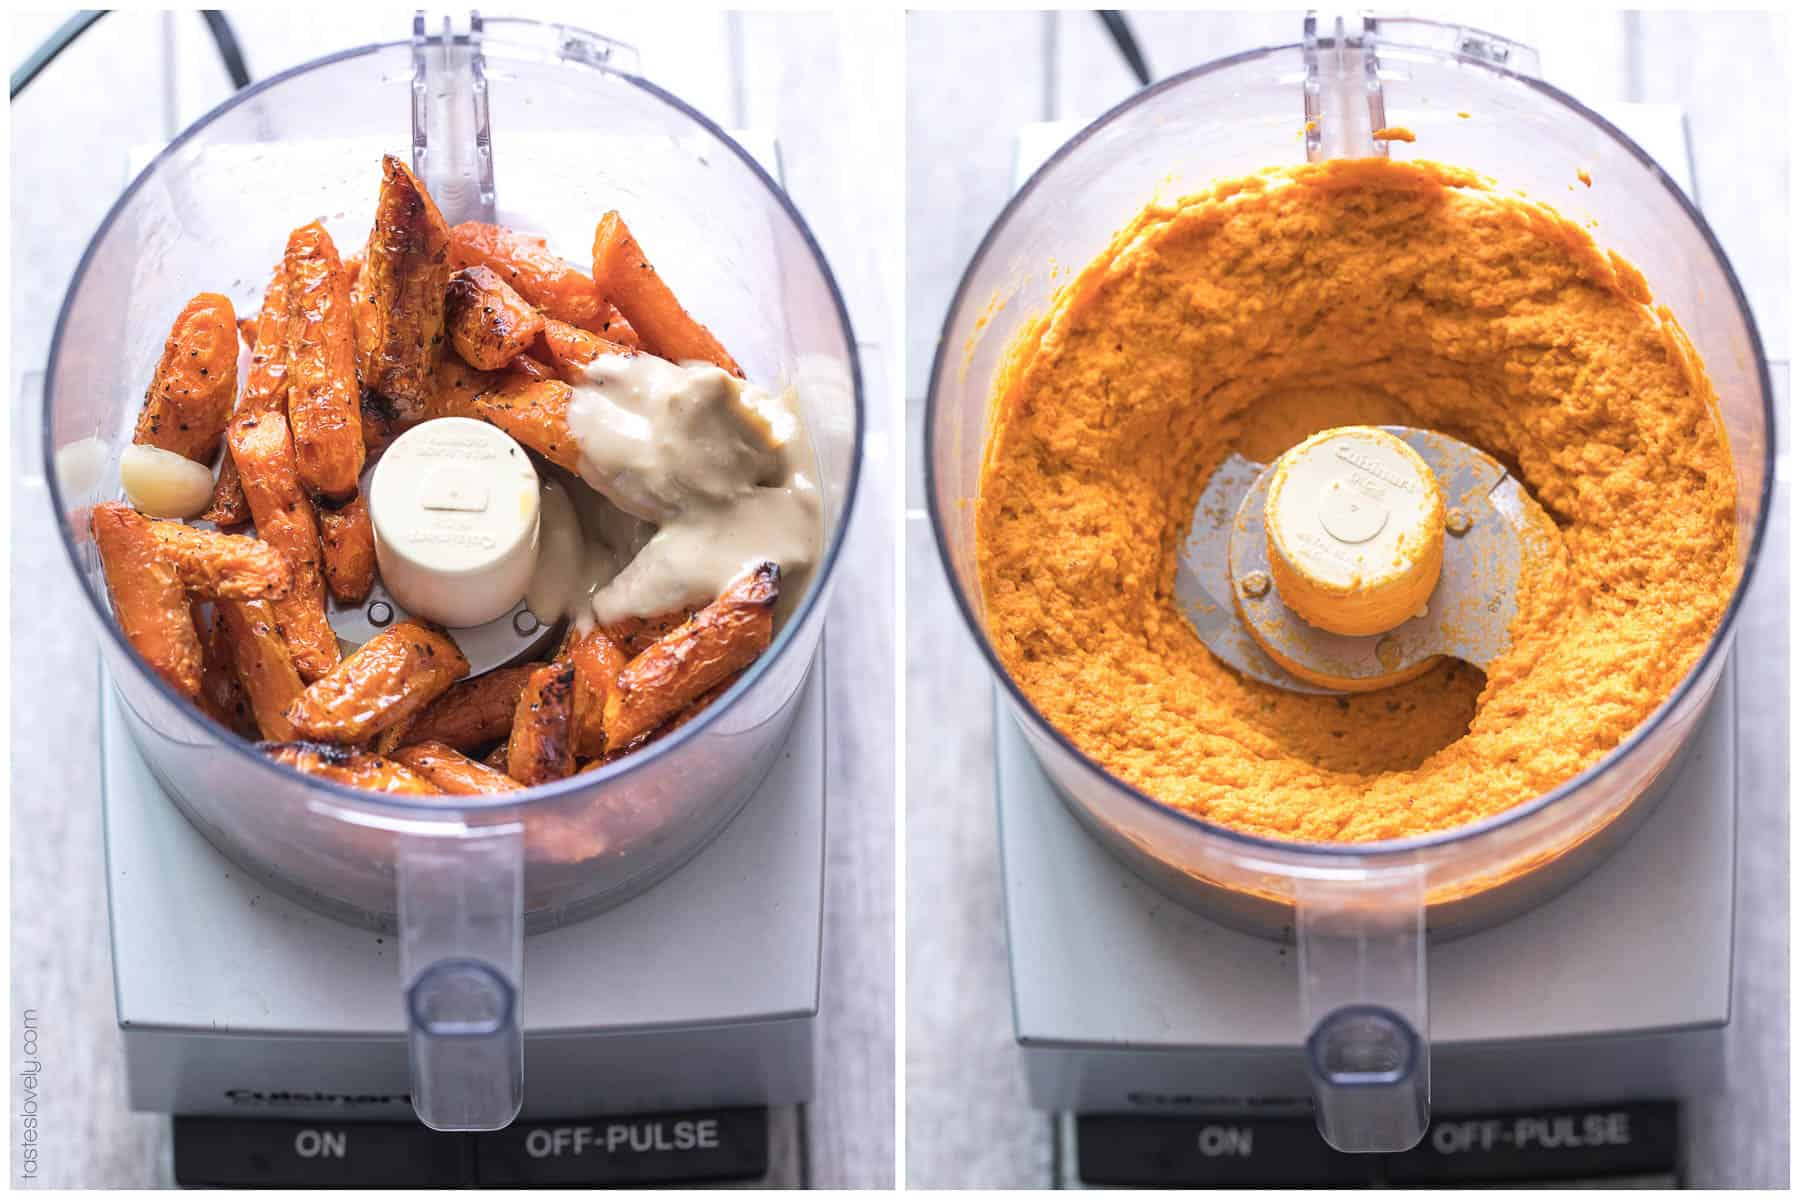 Paleo & Whole30 Roasted Carrot Dip - a delicious and healthy appetizer everyone loves! Gluten free, grain free, dairy free, sugar free, low carb, vegan, clean eating.